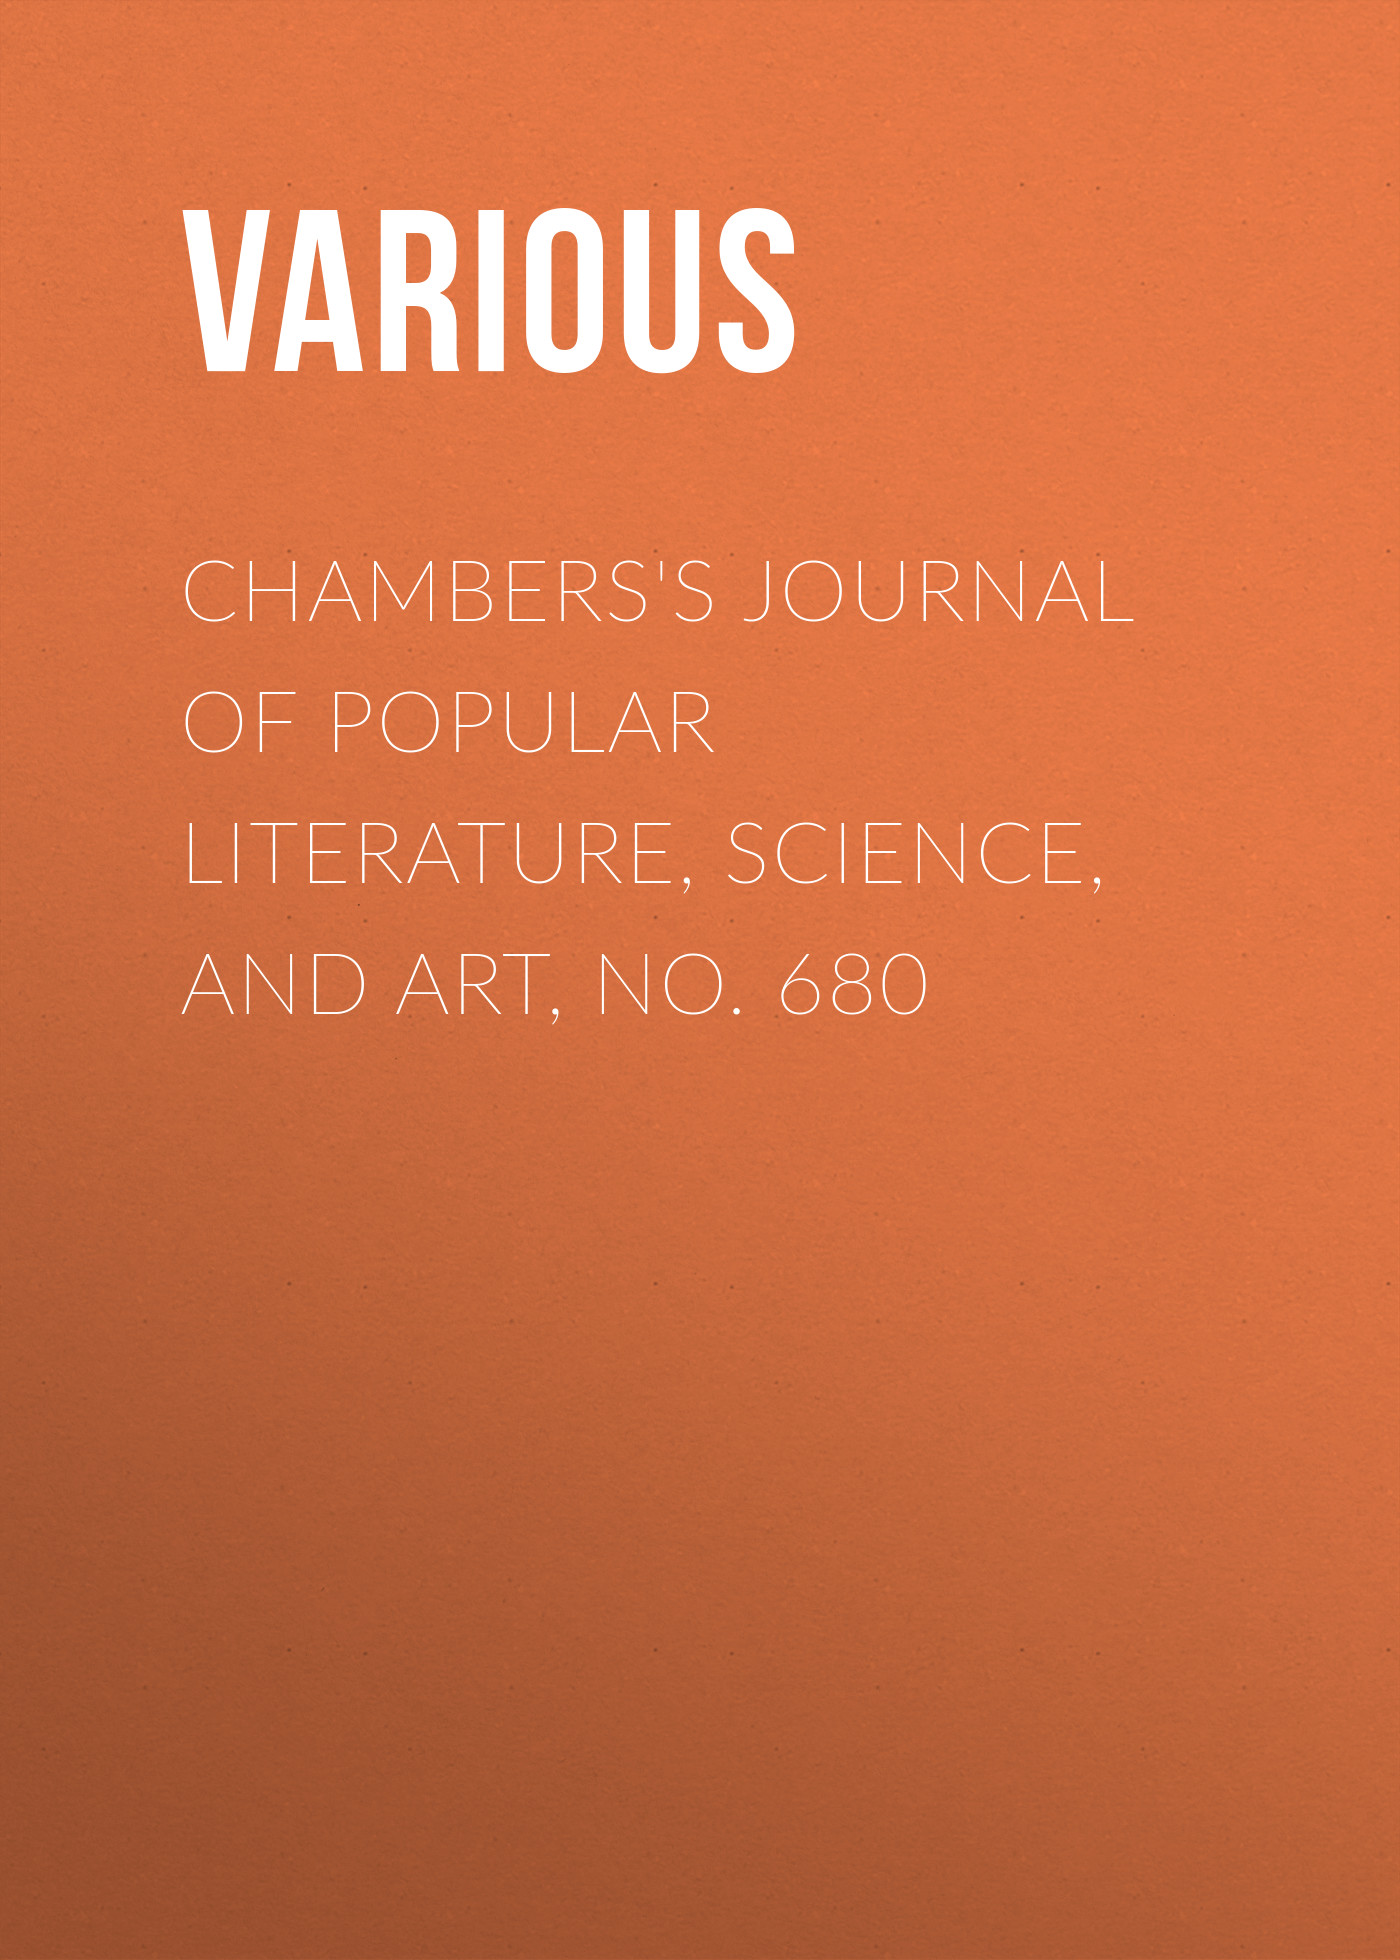 Various Chambers's Journal of Popular Literature, Science, and Art, No. 680